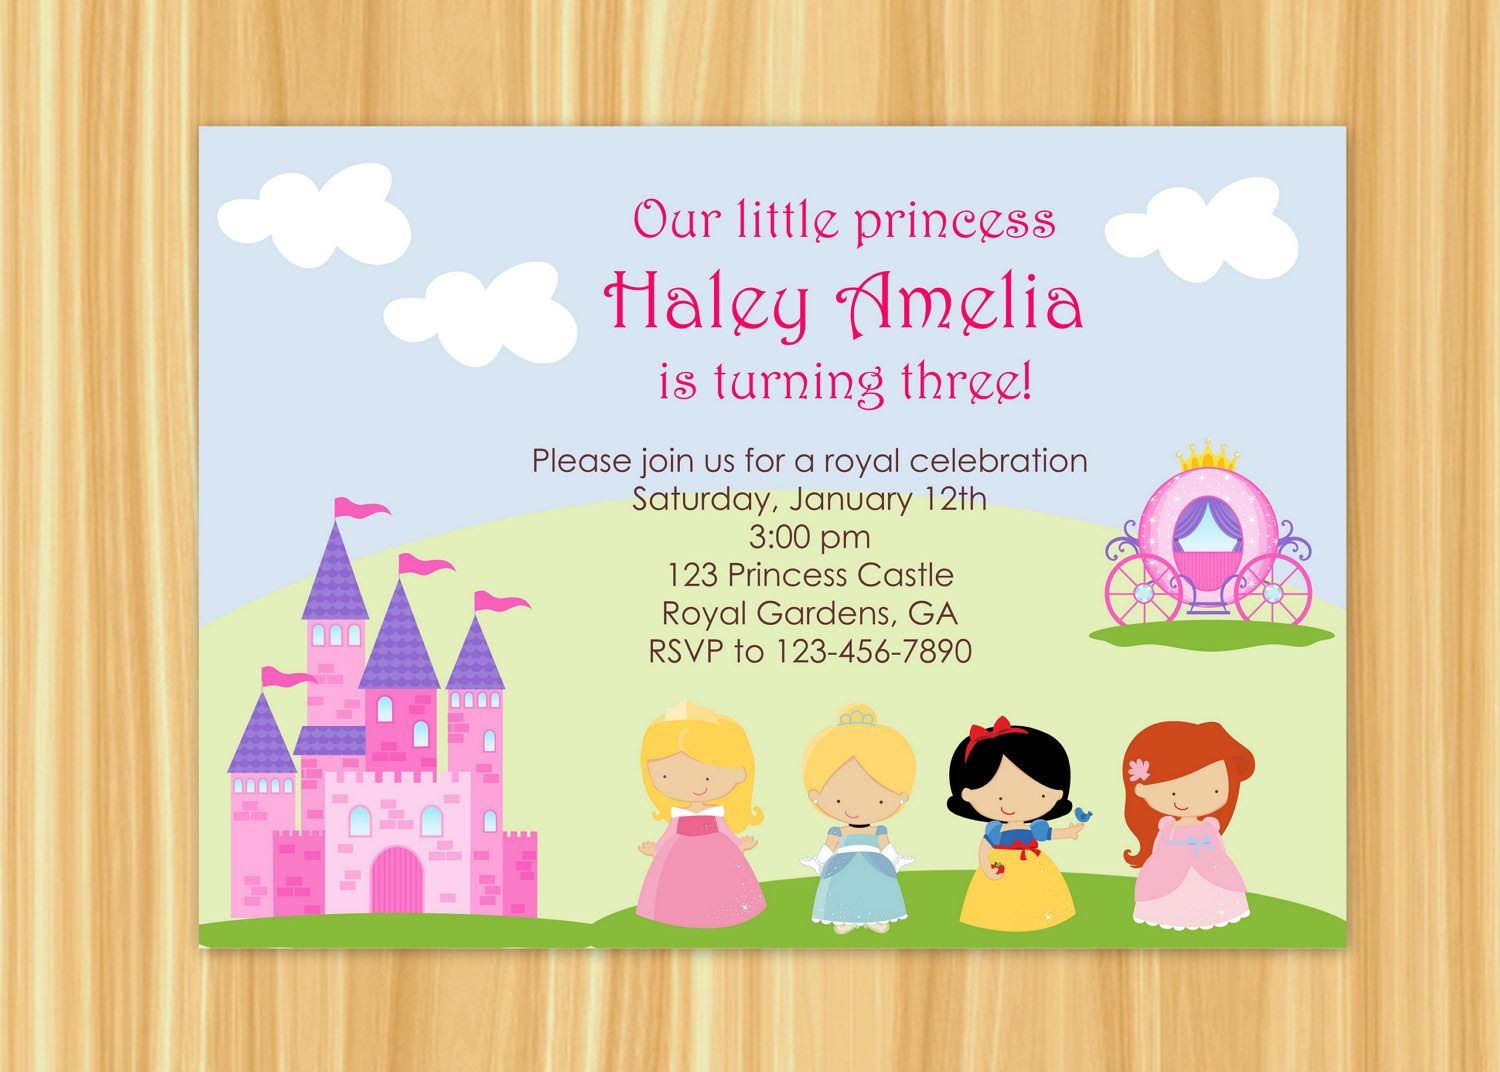 Princess Party Invitations Wording | Princess Party | Pinterest ...